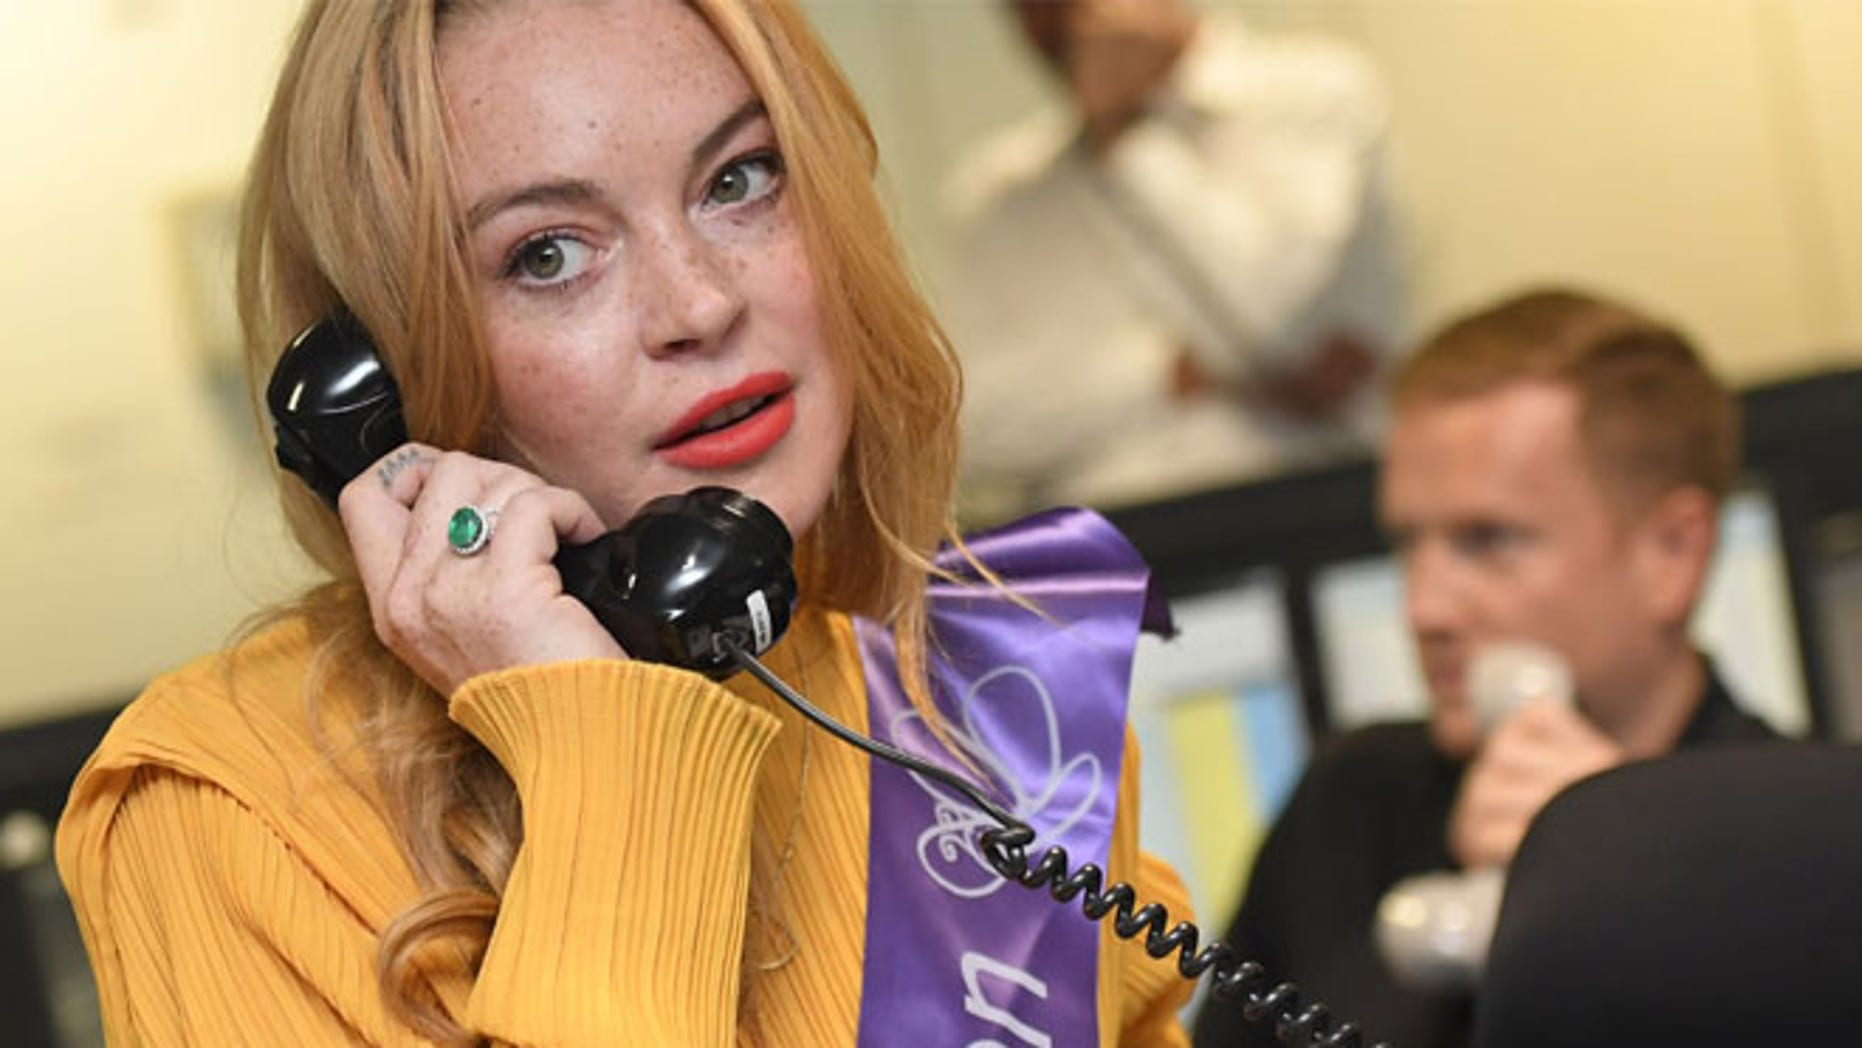 Social media posts spurred rumors that Lindsay Lohan converted to Islam this weekend.